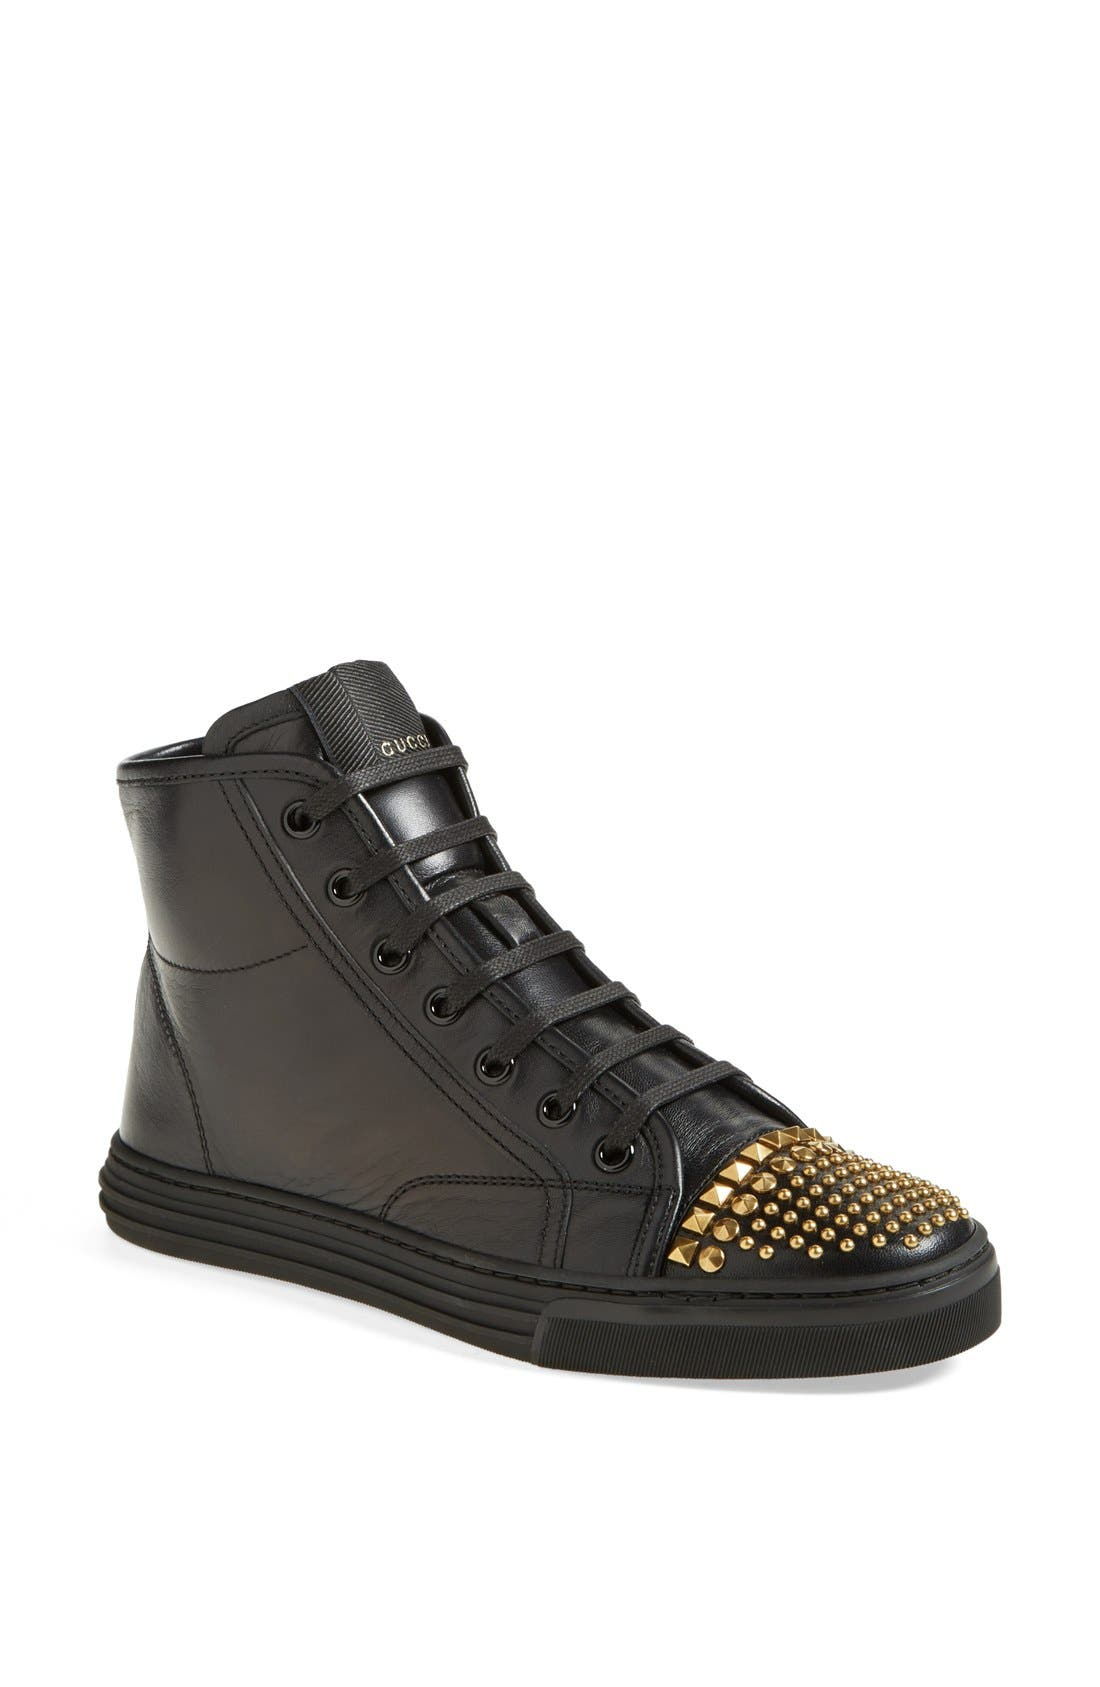 Alternate Image 1 Selected - Gucci 'California' Studded Sneaker (Women)